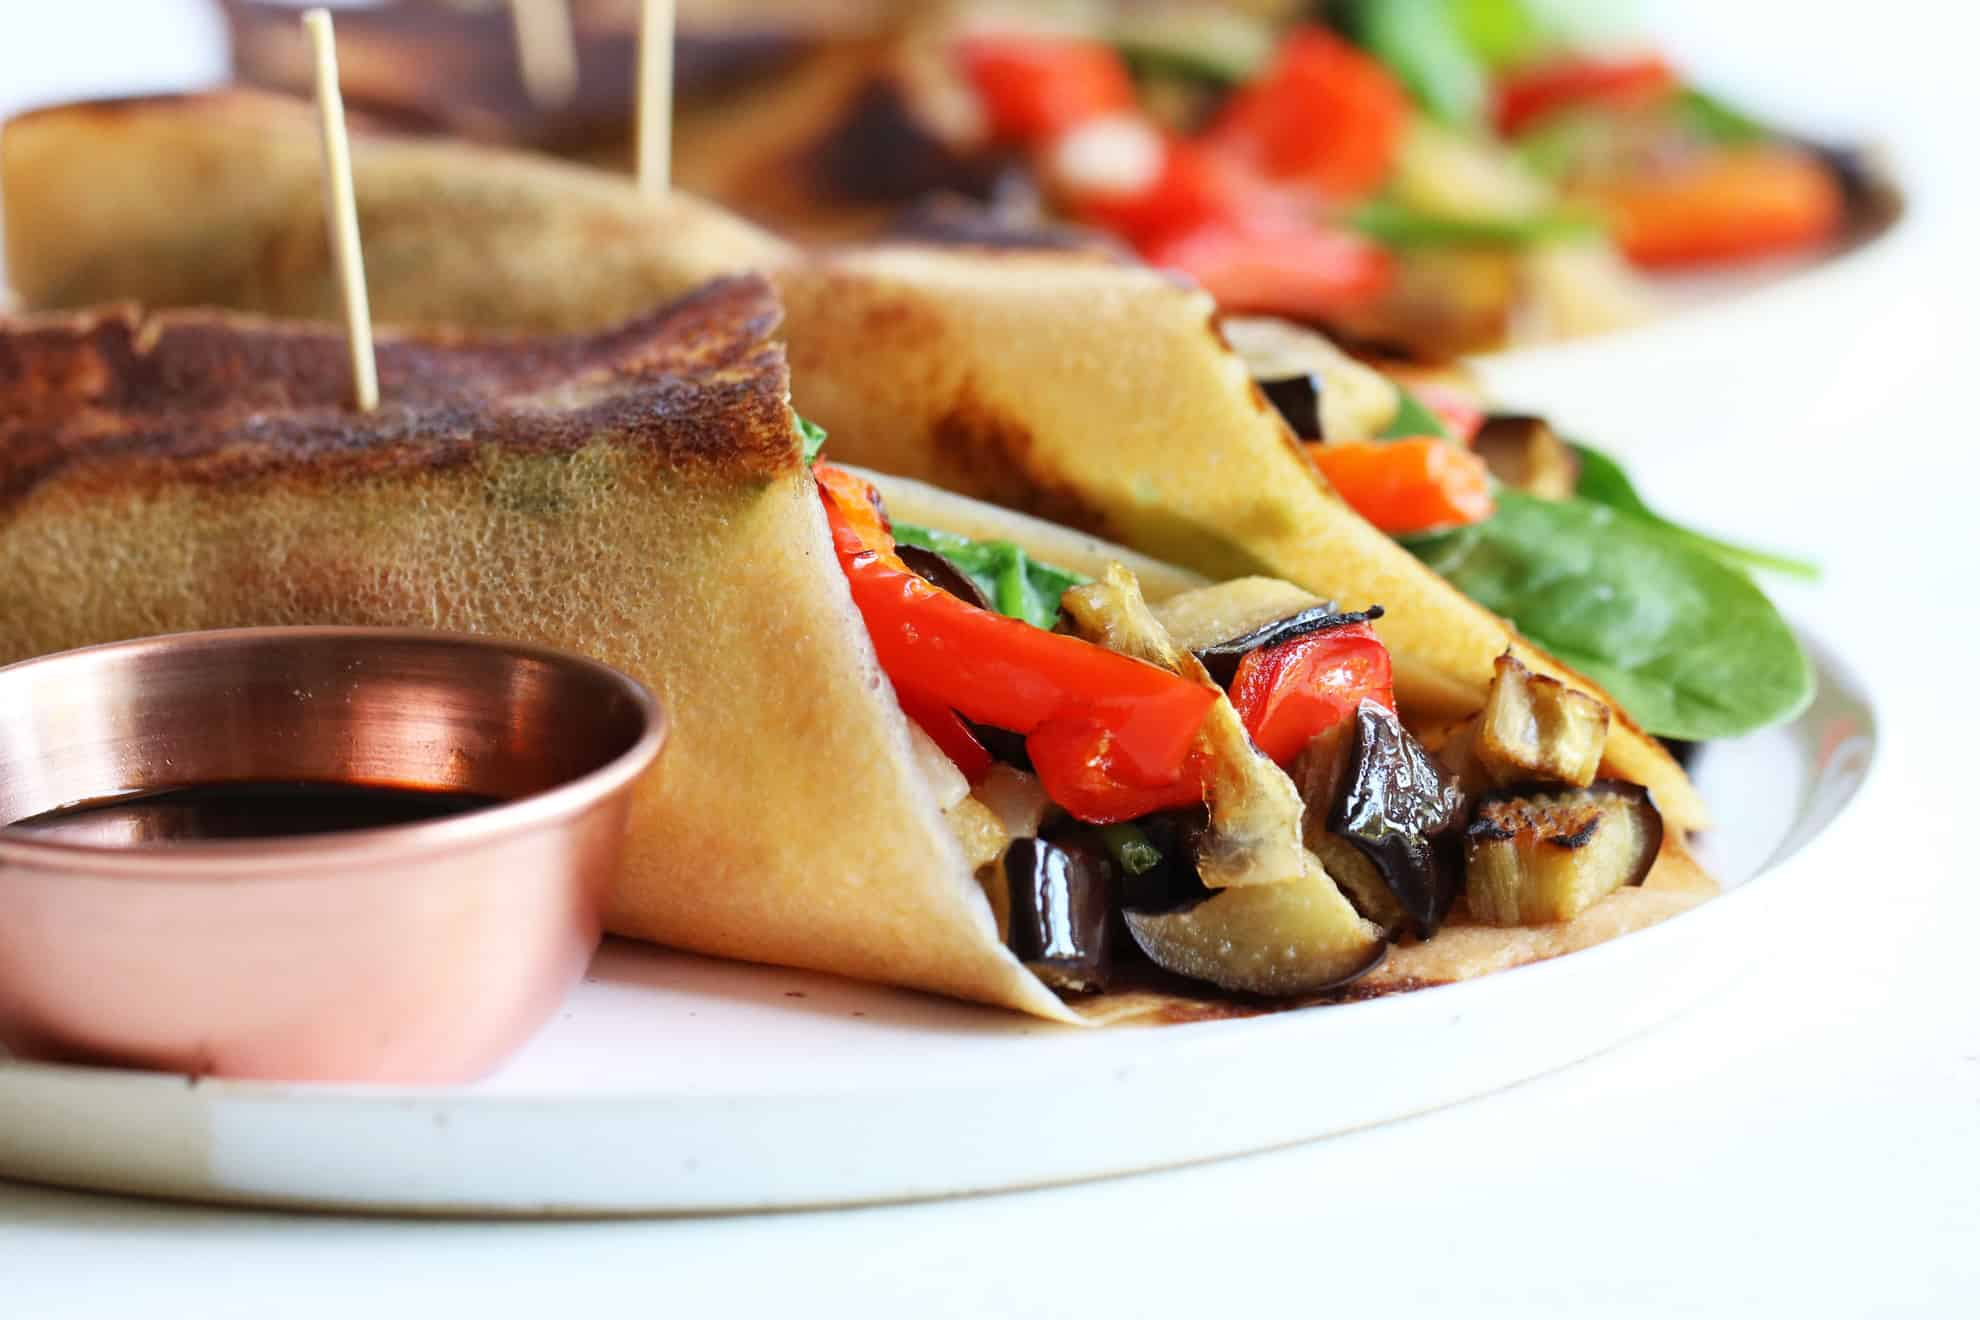 Balsamic Roasted Veggie Wraps